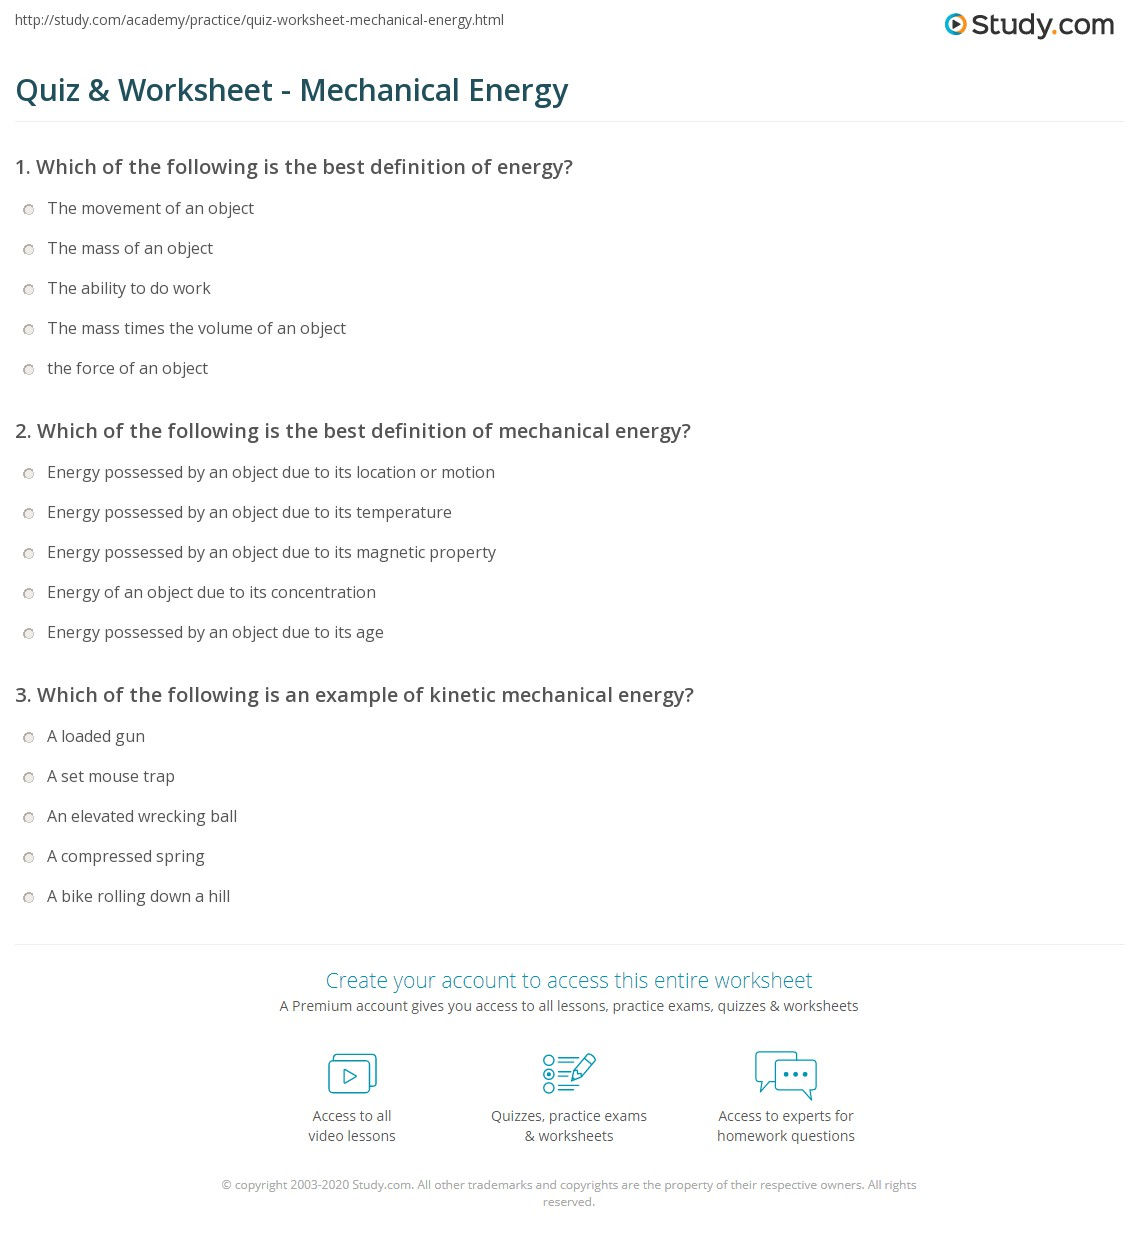 Quiz & Worksheet - Mechanical Energy | Study.com